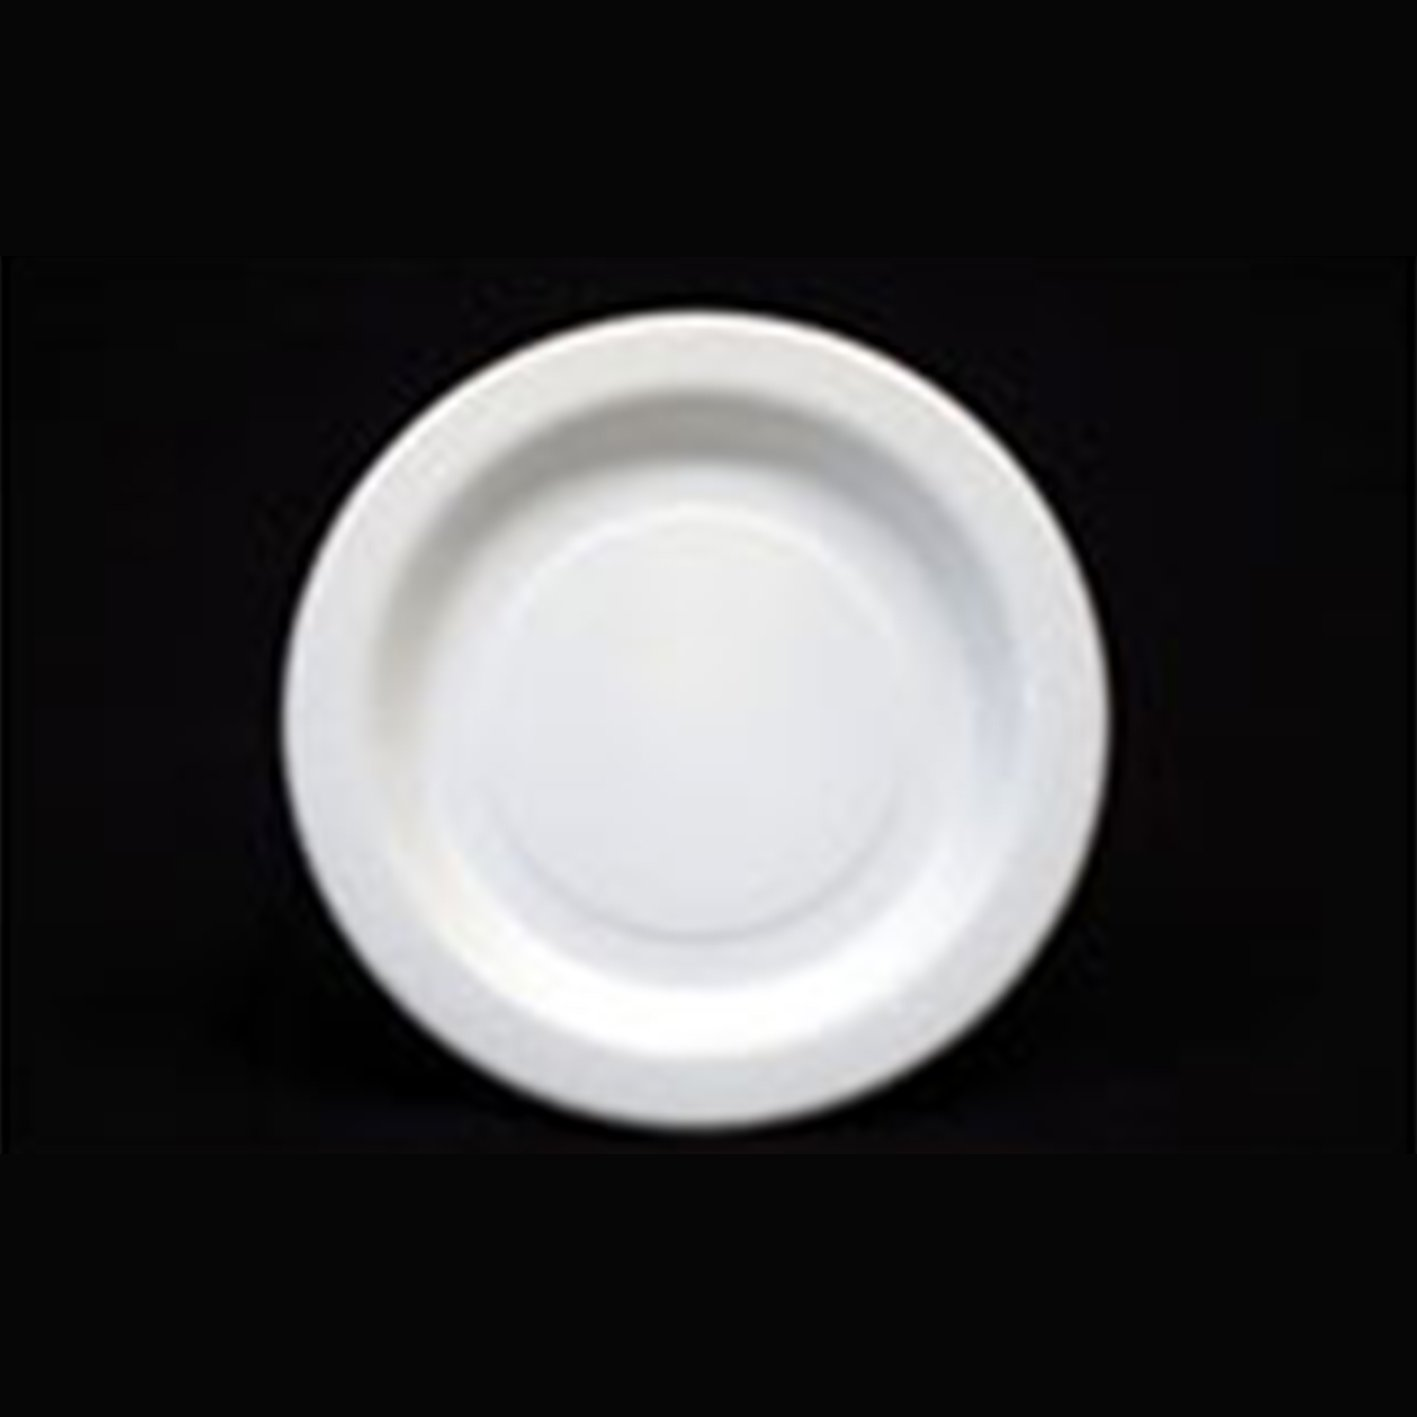 PlasticBreadButterPlate25